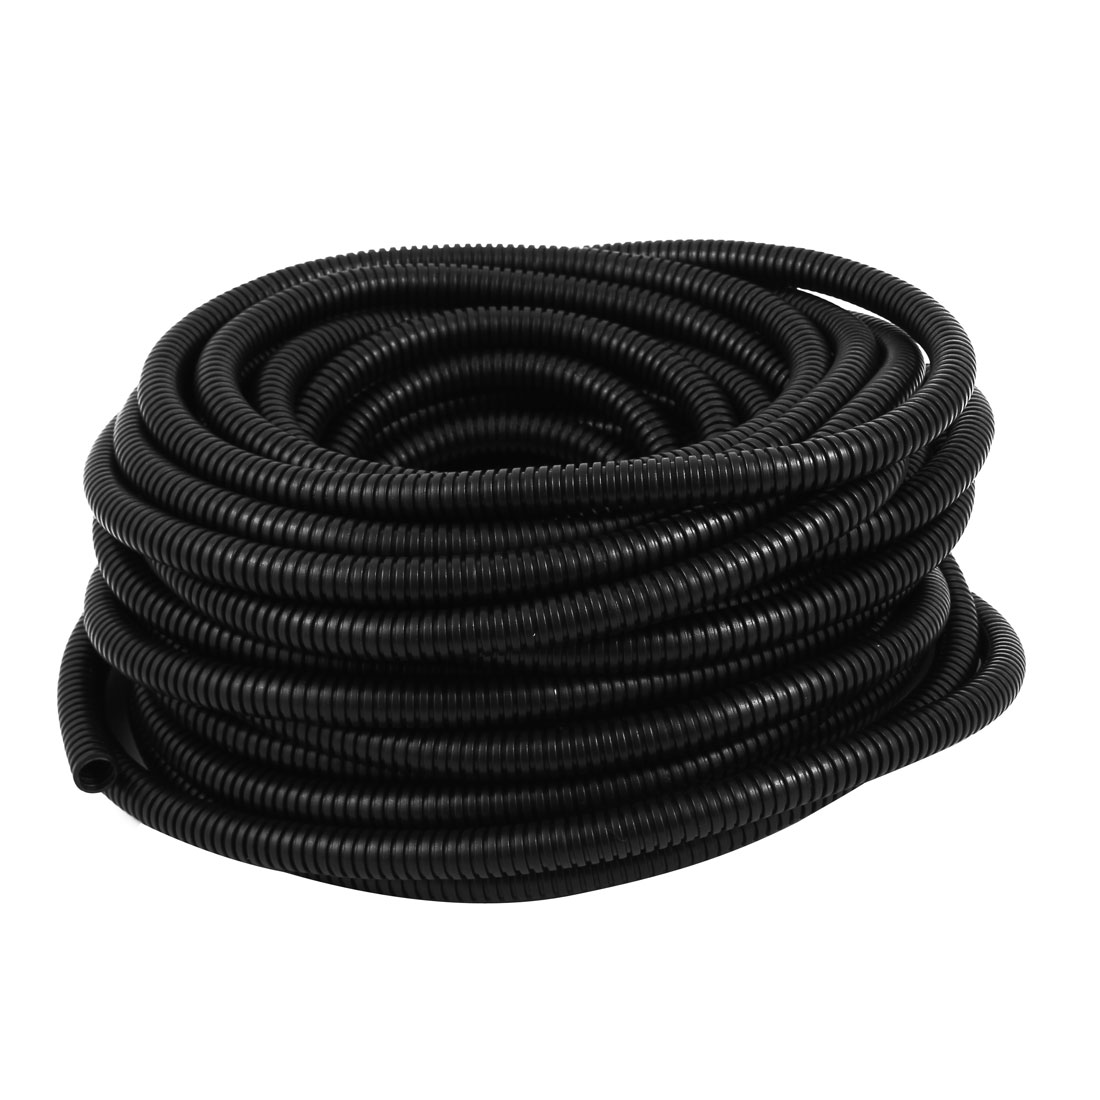 Black Plastic 13mm x 10mm Flexible Corrugated Conduit Pipe Hose Tube 16.8m Long